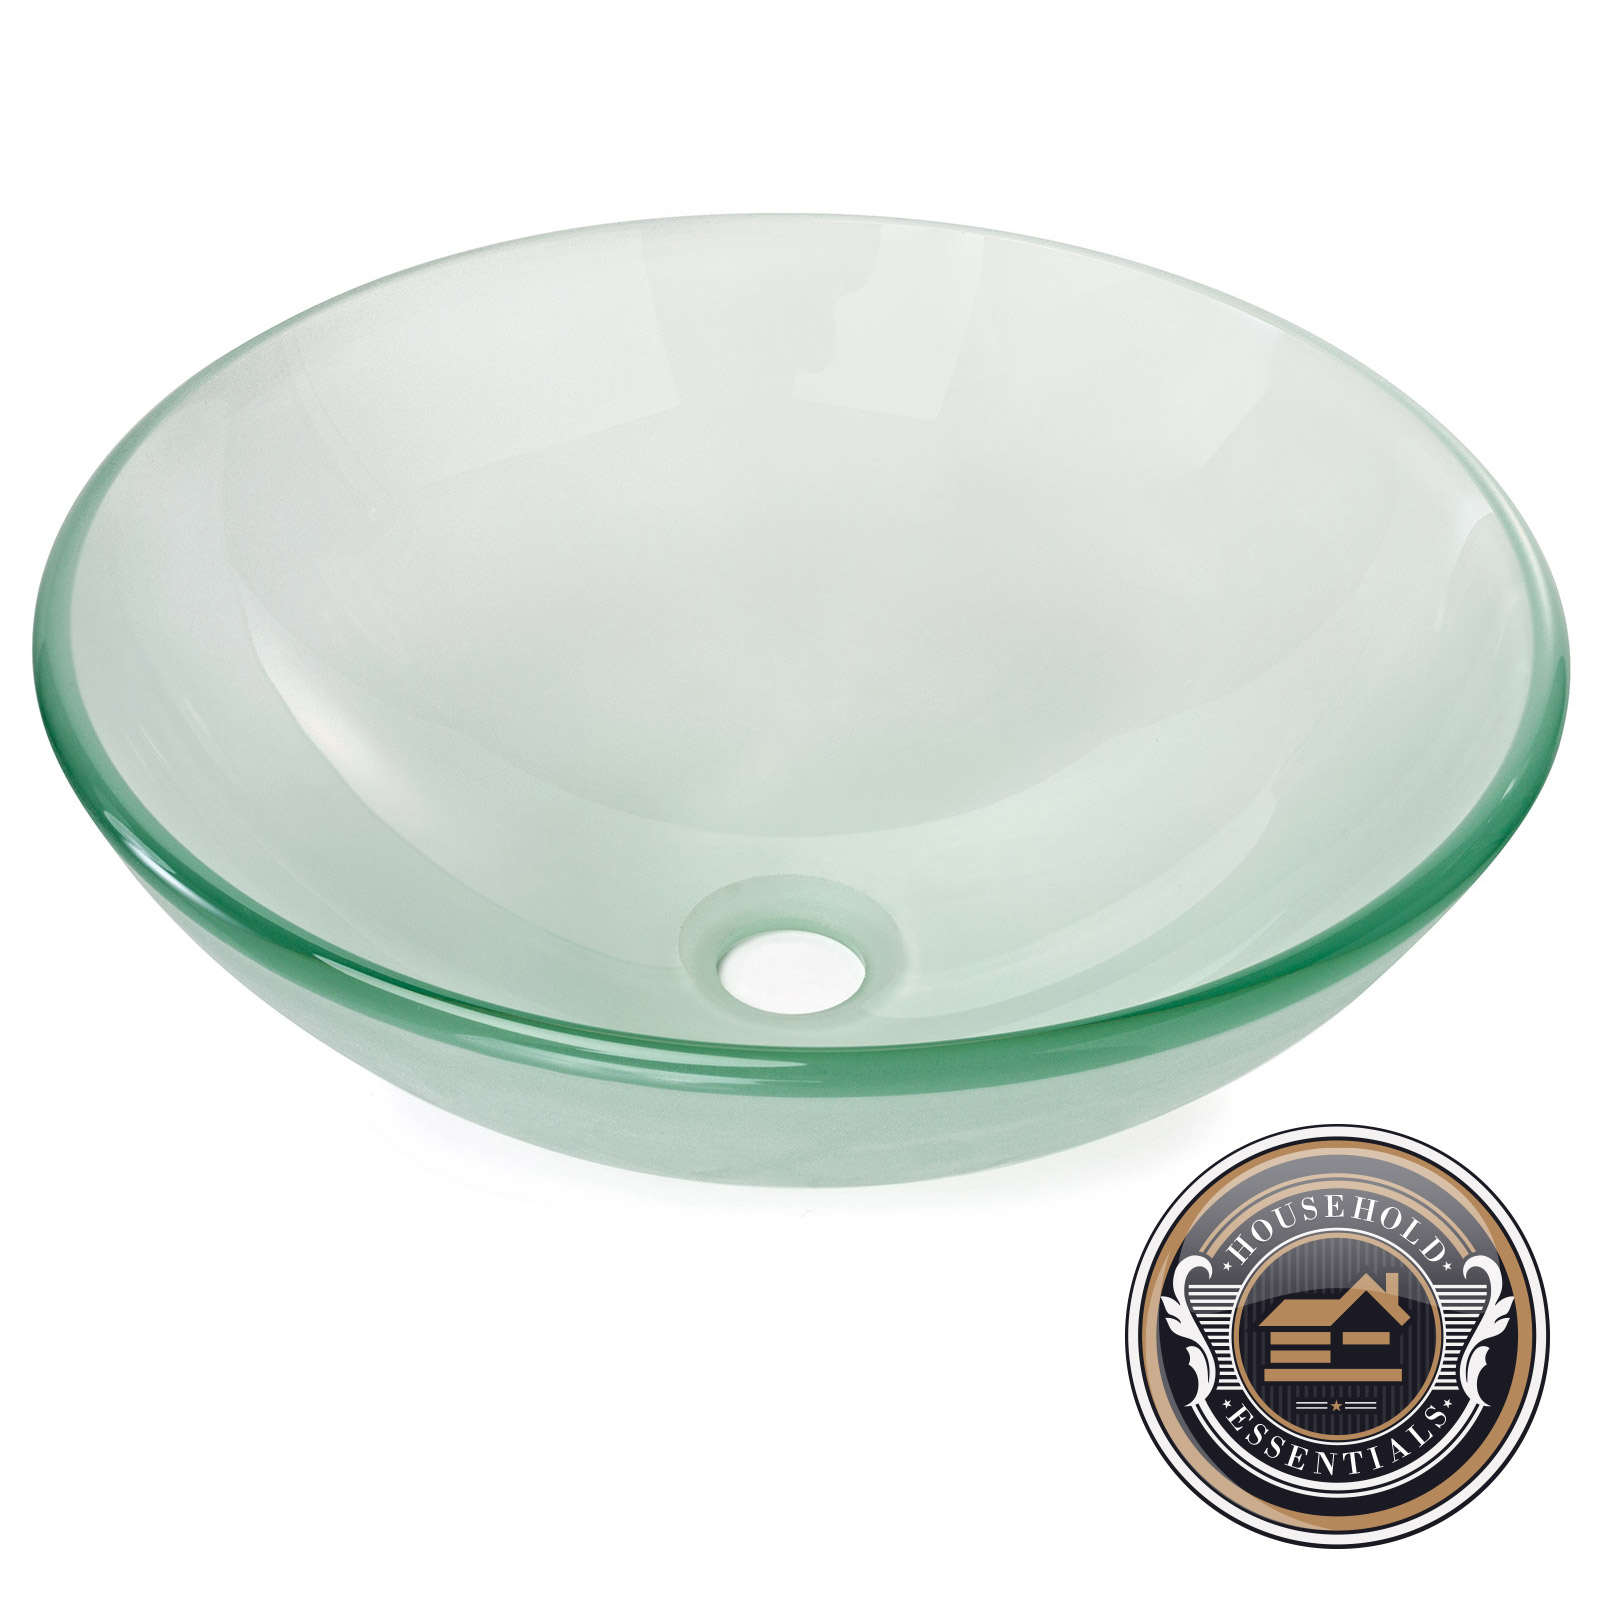 Bathroom Vessel Sink Frosted Tempered Glass Round Basin